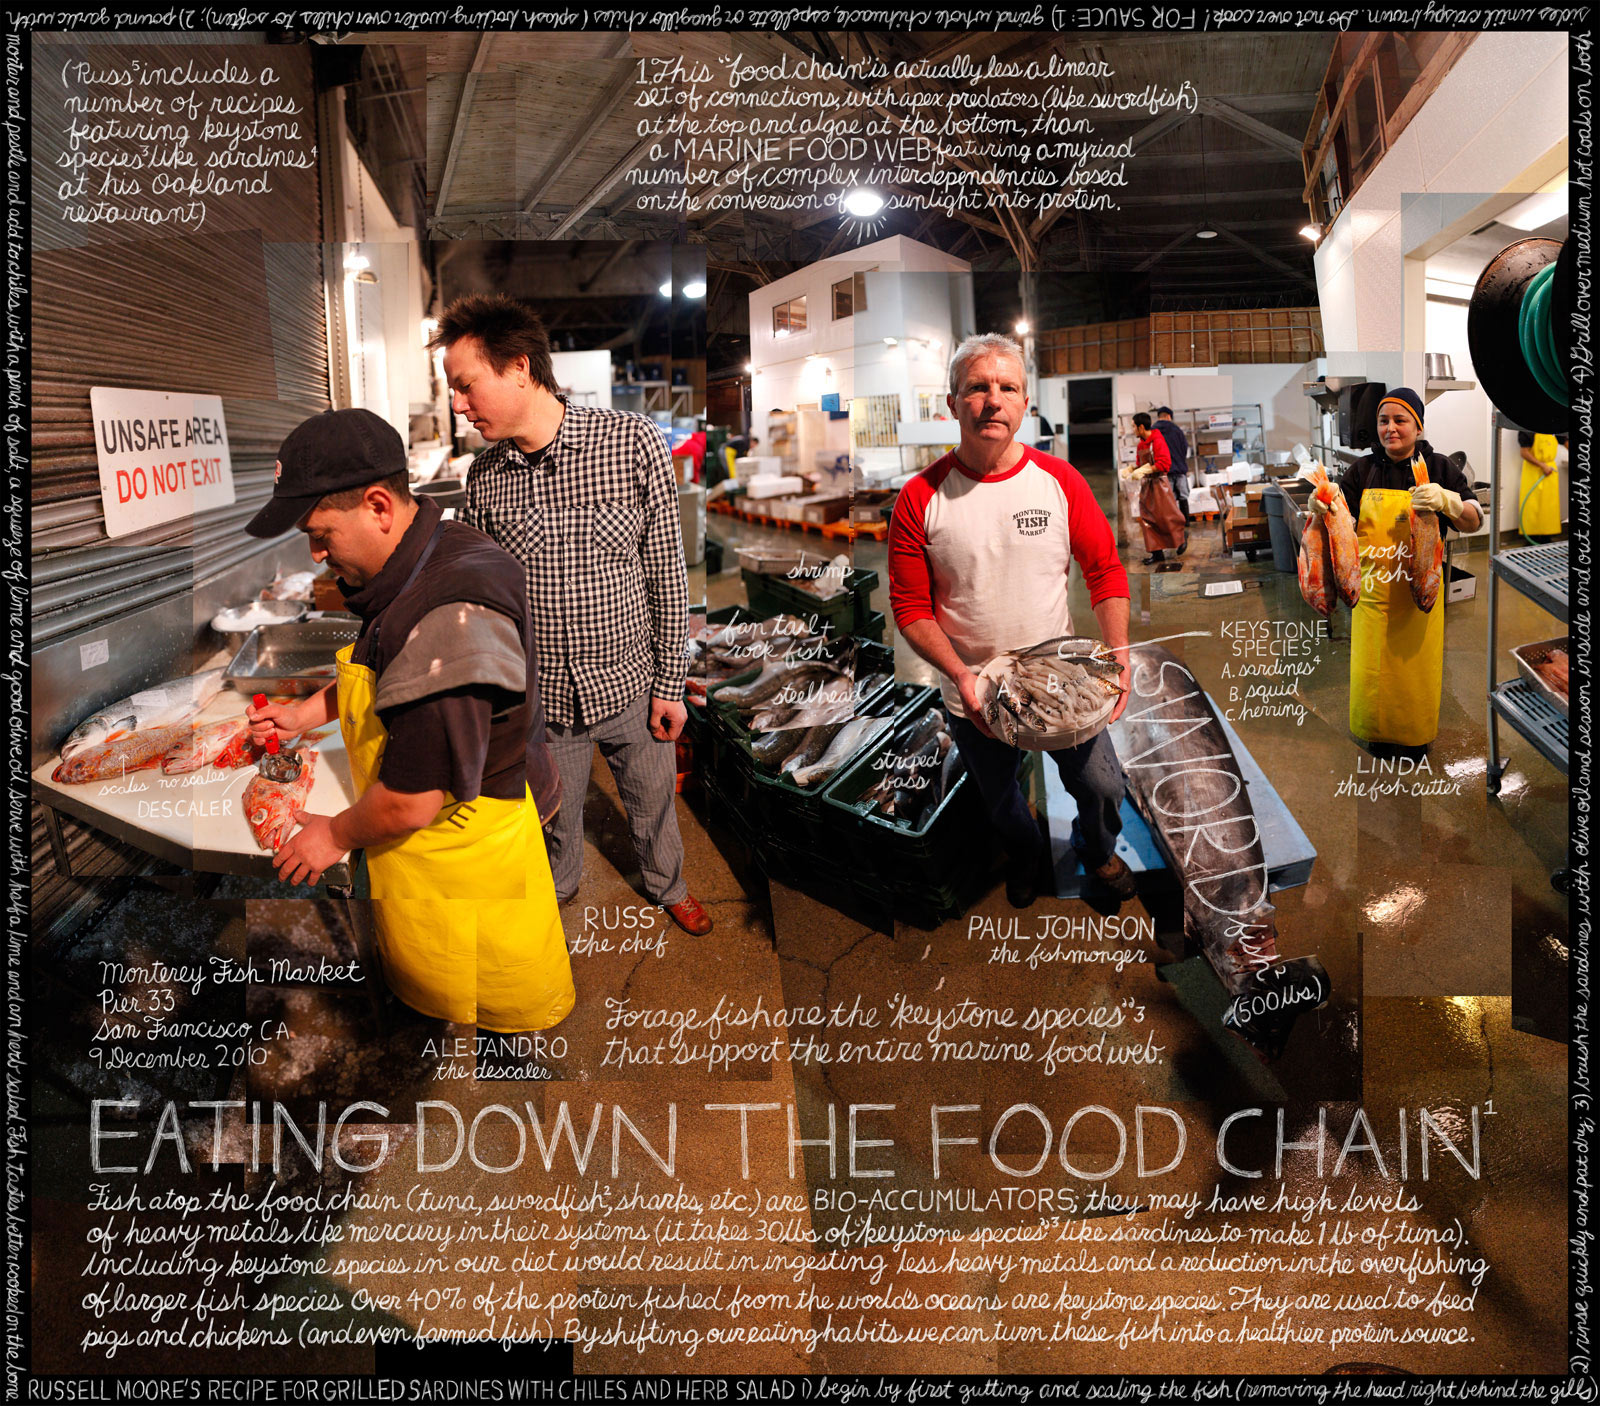 Paul Johnson, Monterey Fish Market. San Francisco, CA. Credit: Information artwork by Douglas Gayeton. From the Lexicon of Sustainability project.